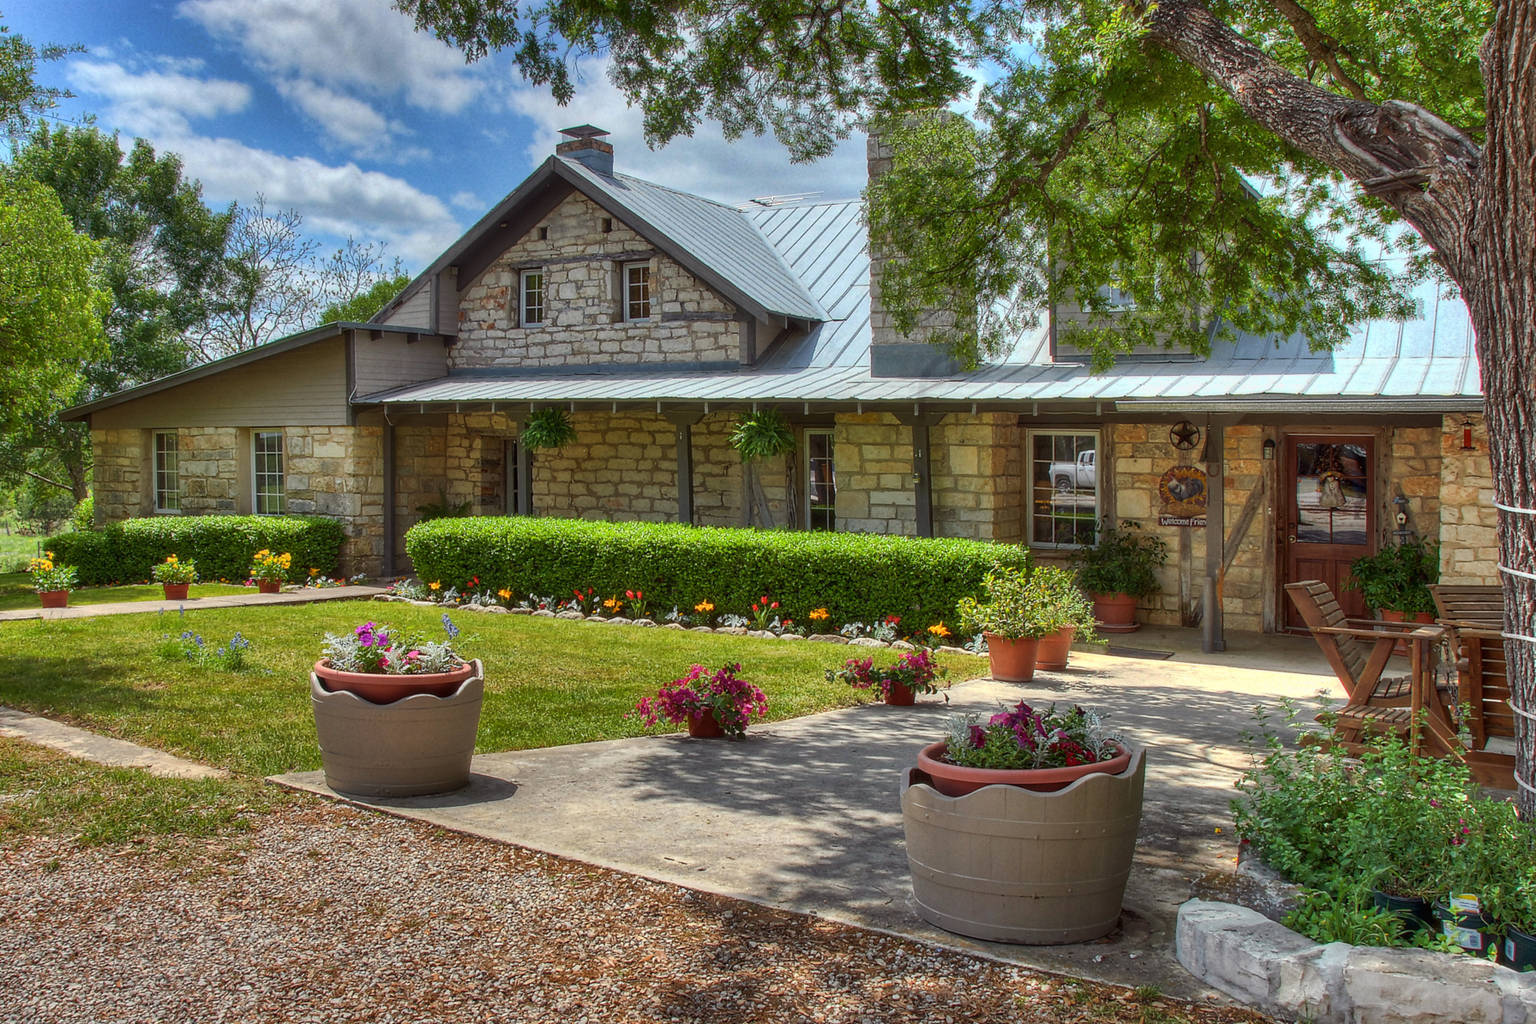 New Braunfels Bed and Breakfast